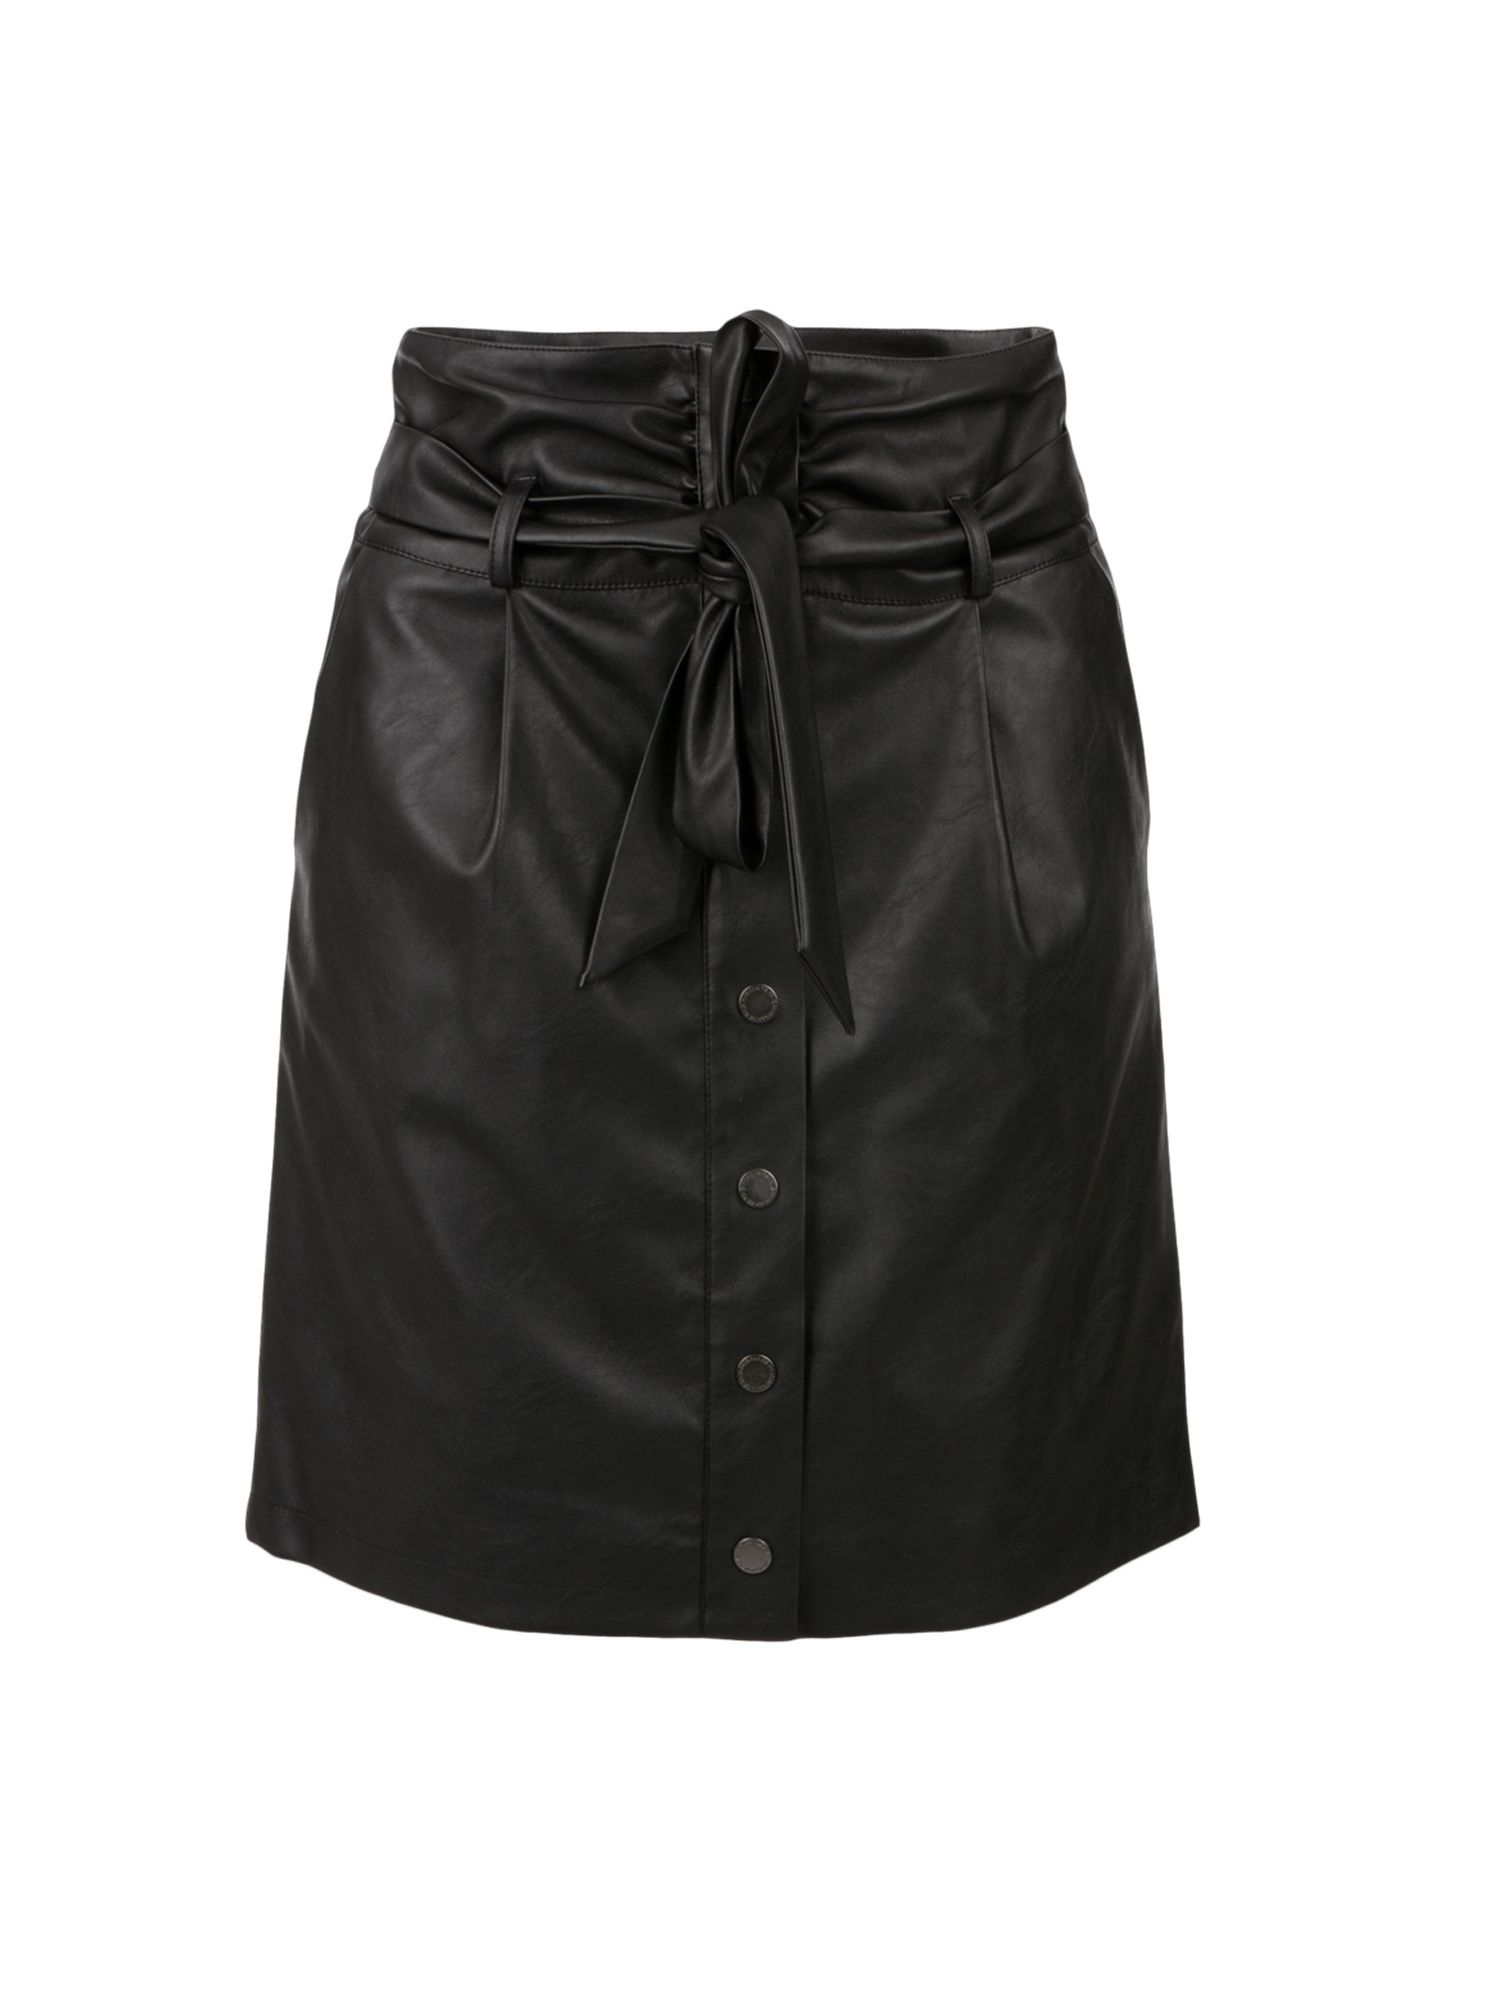 Morgan Morgan Faux Leather High Waisted Skirt, Black